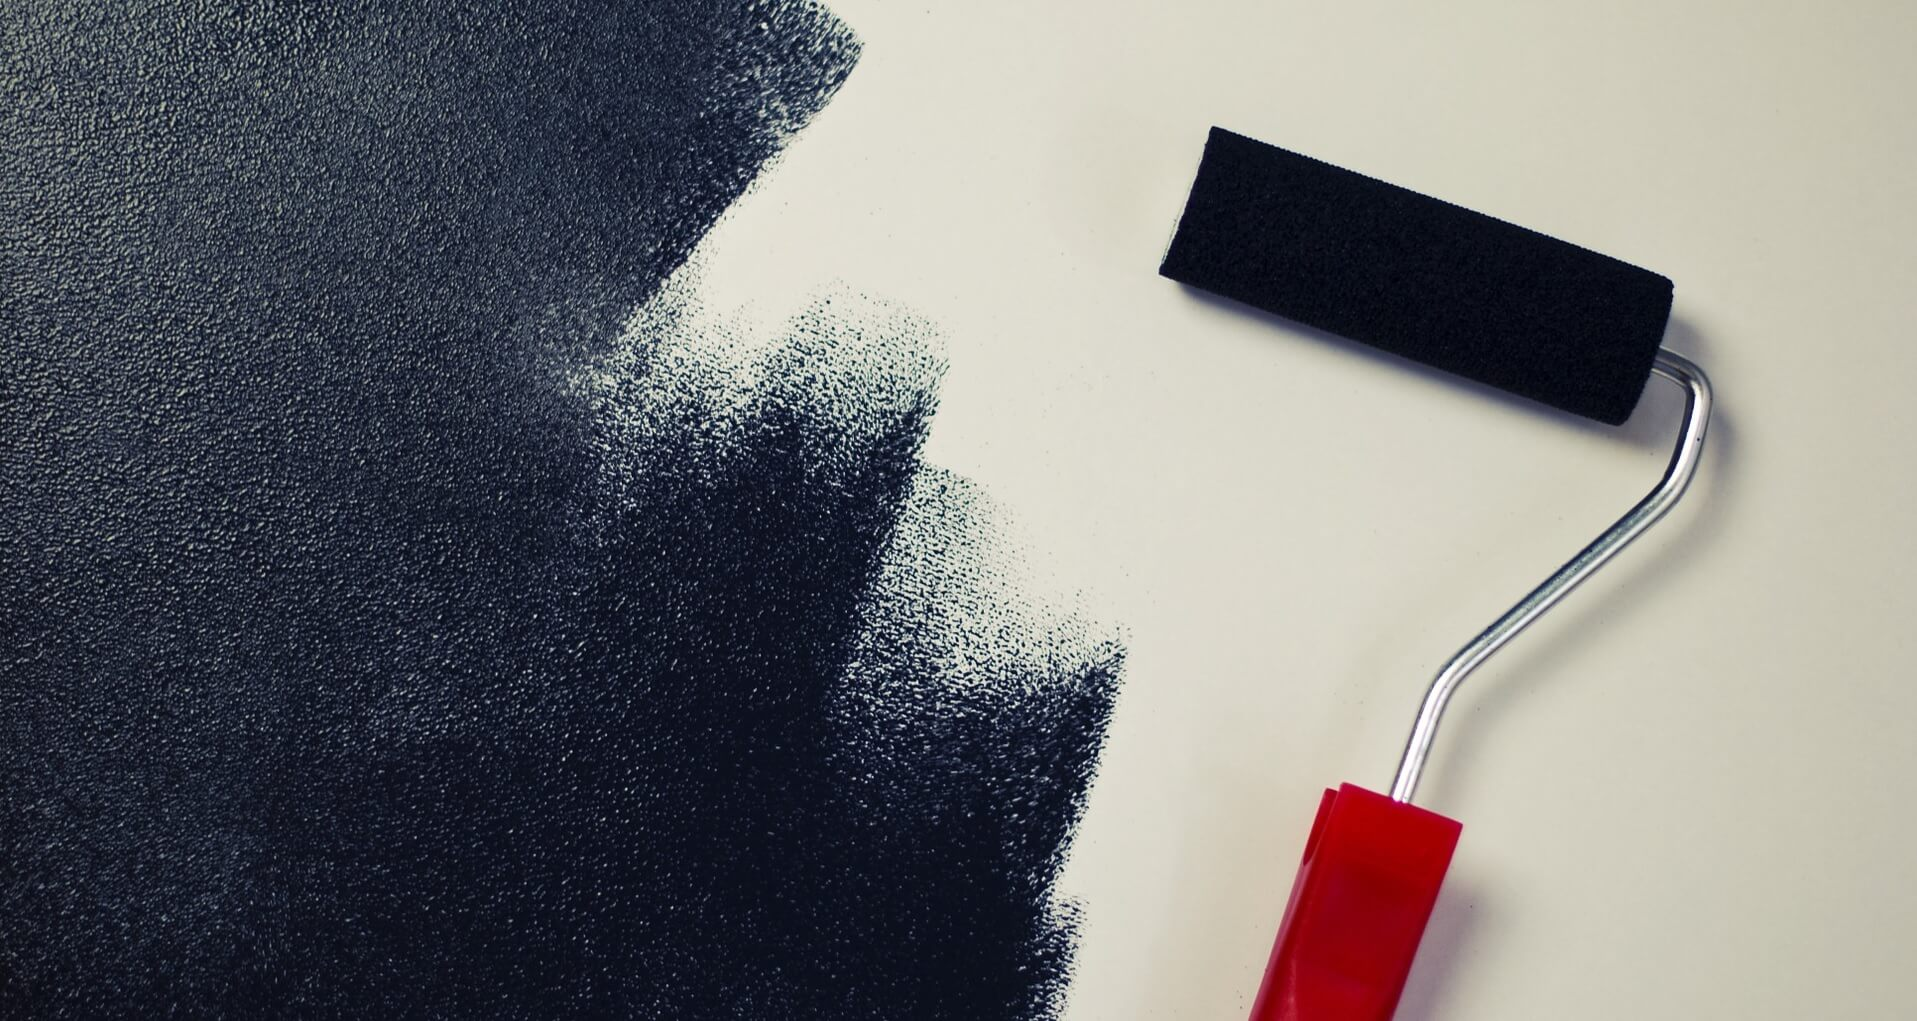 Black paint roller on white wall